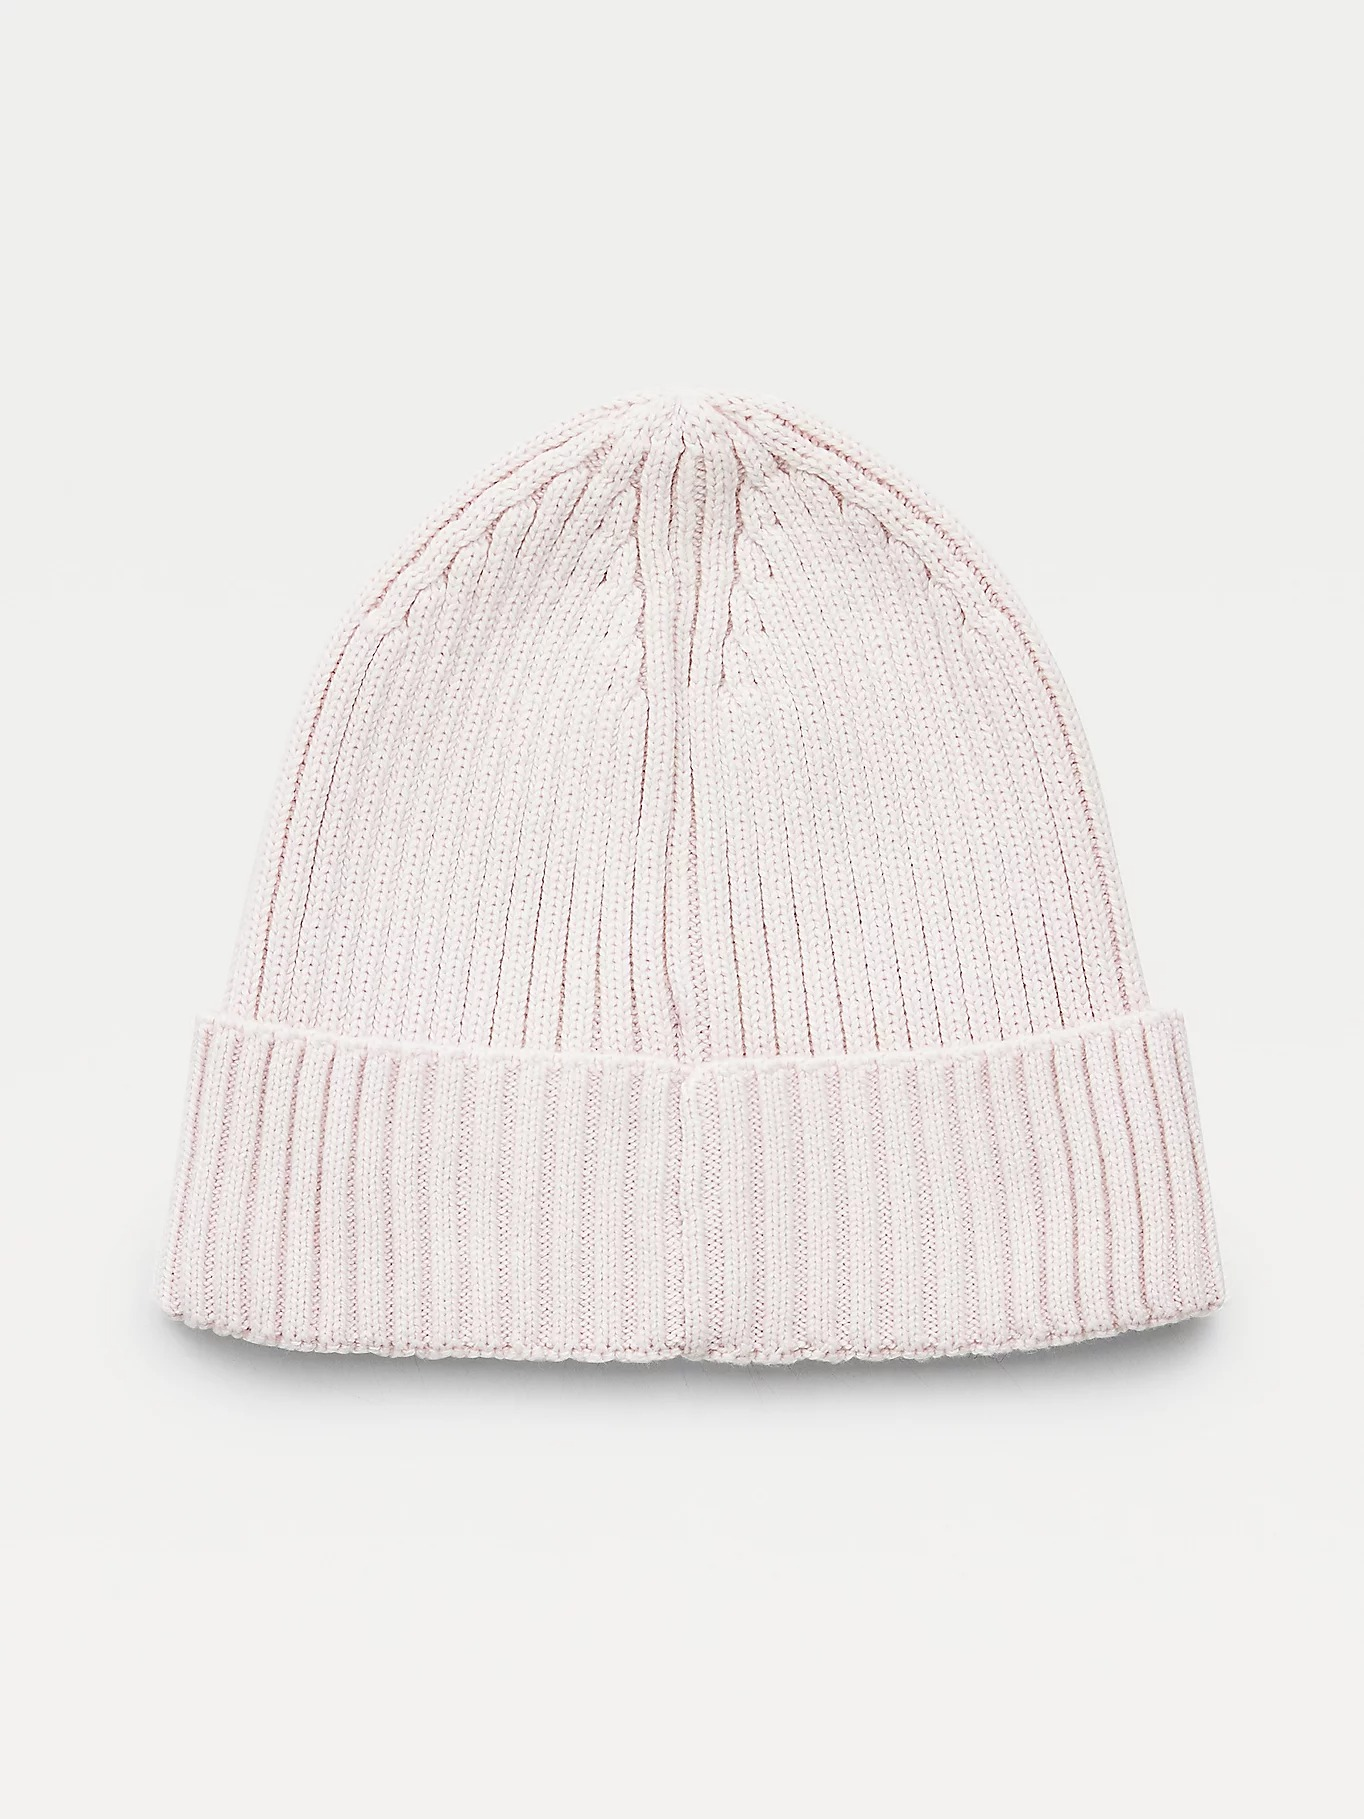 BERRETTO ESSENTIAL IN COTONE BIOLOGICO TOMMY HILFIGER   Cappelli   AW0AW10705TJP PALE PINK